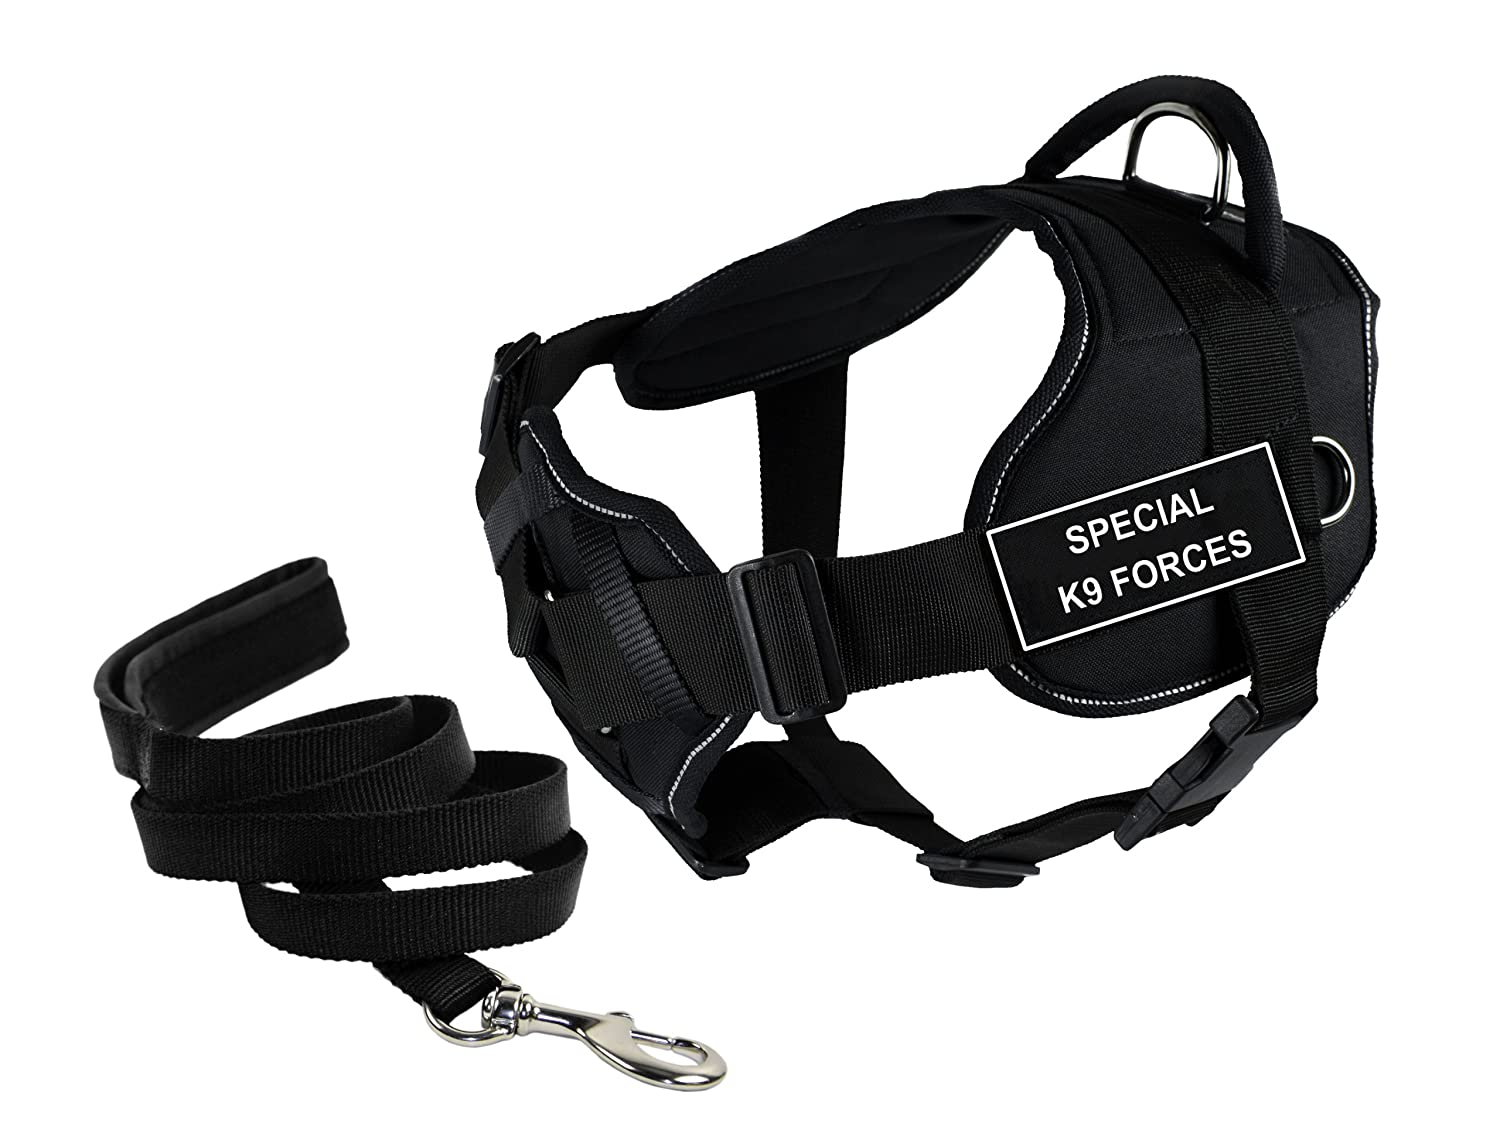 Dean & Tyler's DT Fun Chest Support SPECIAL K9 FORCES Harness with Reflective Trim, Small, and 6 ft Padded Puppy Leash.